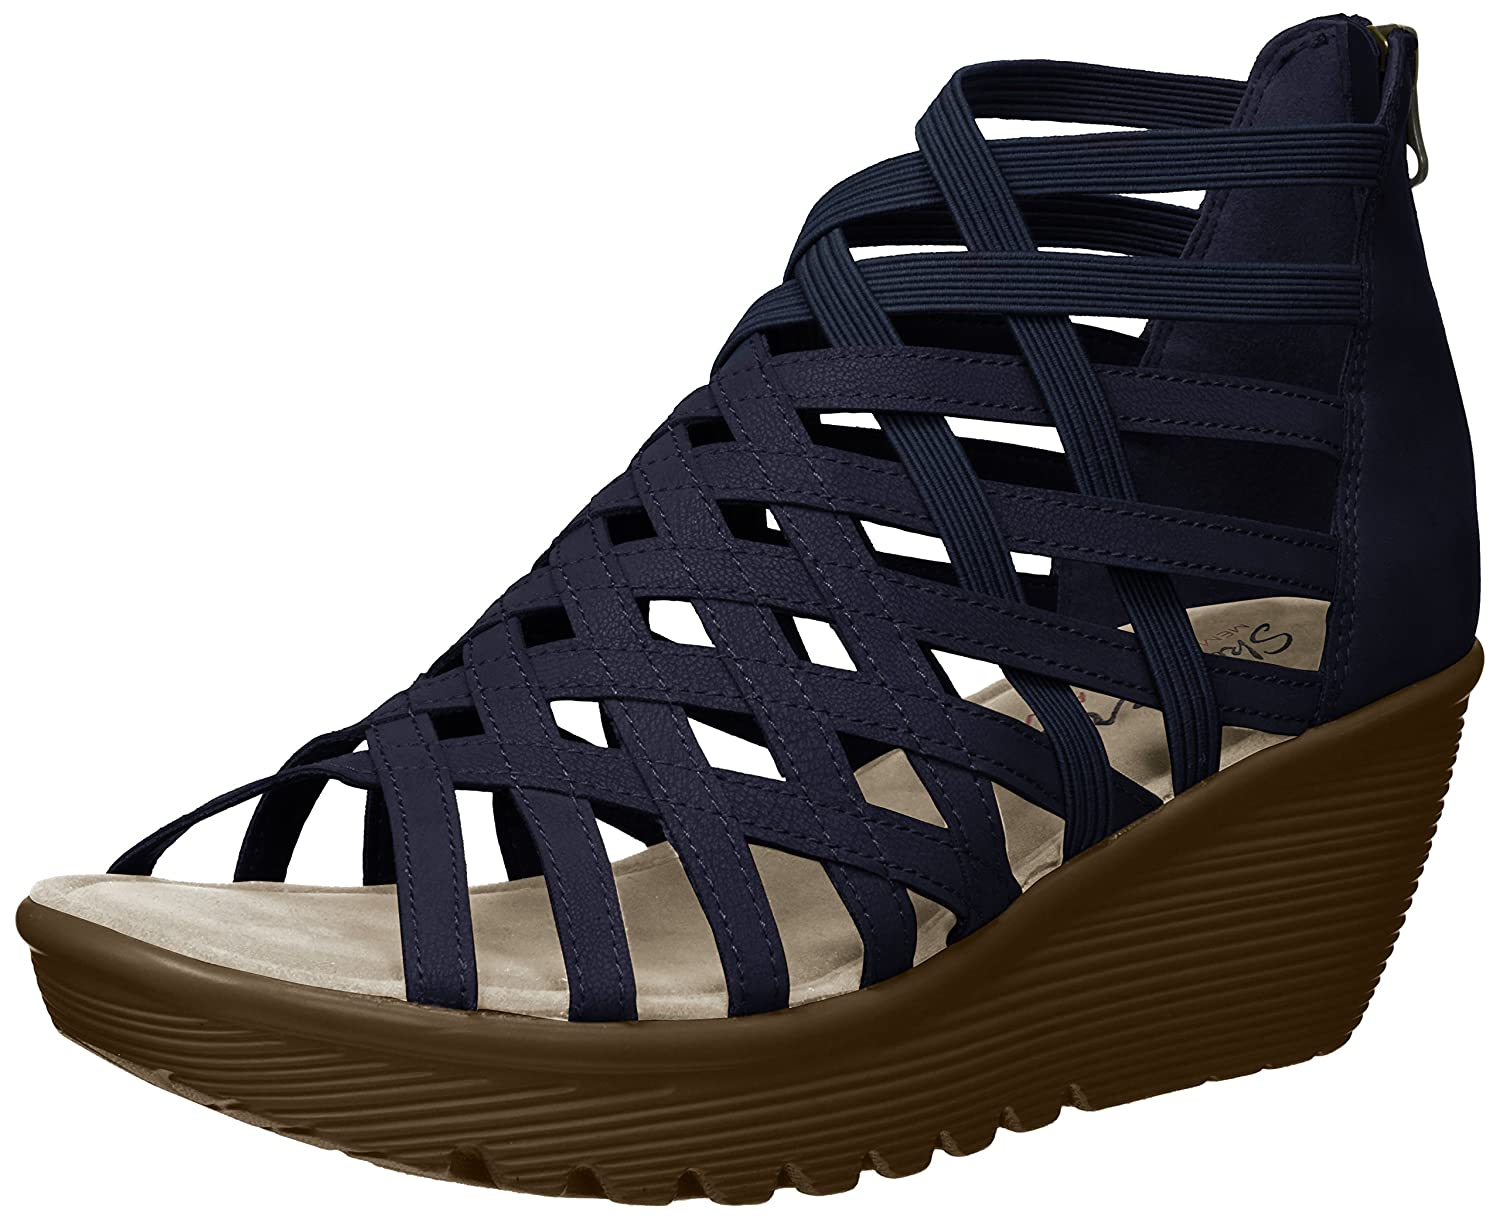 Navy Skechers Womens Parallel-Dream Queen - Caged Open Toe Sandal Wedge Sandal